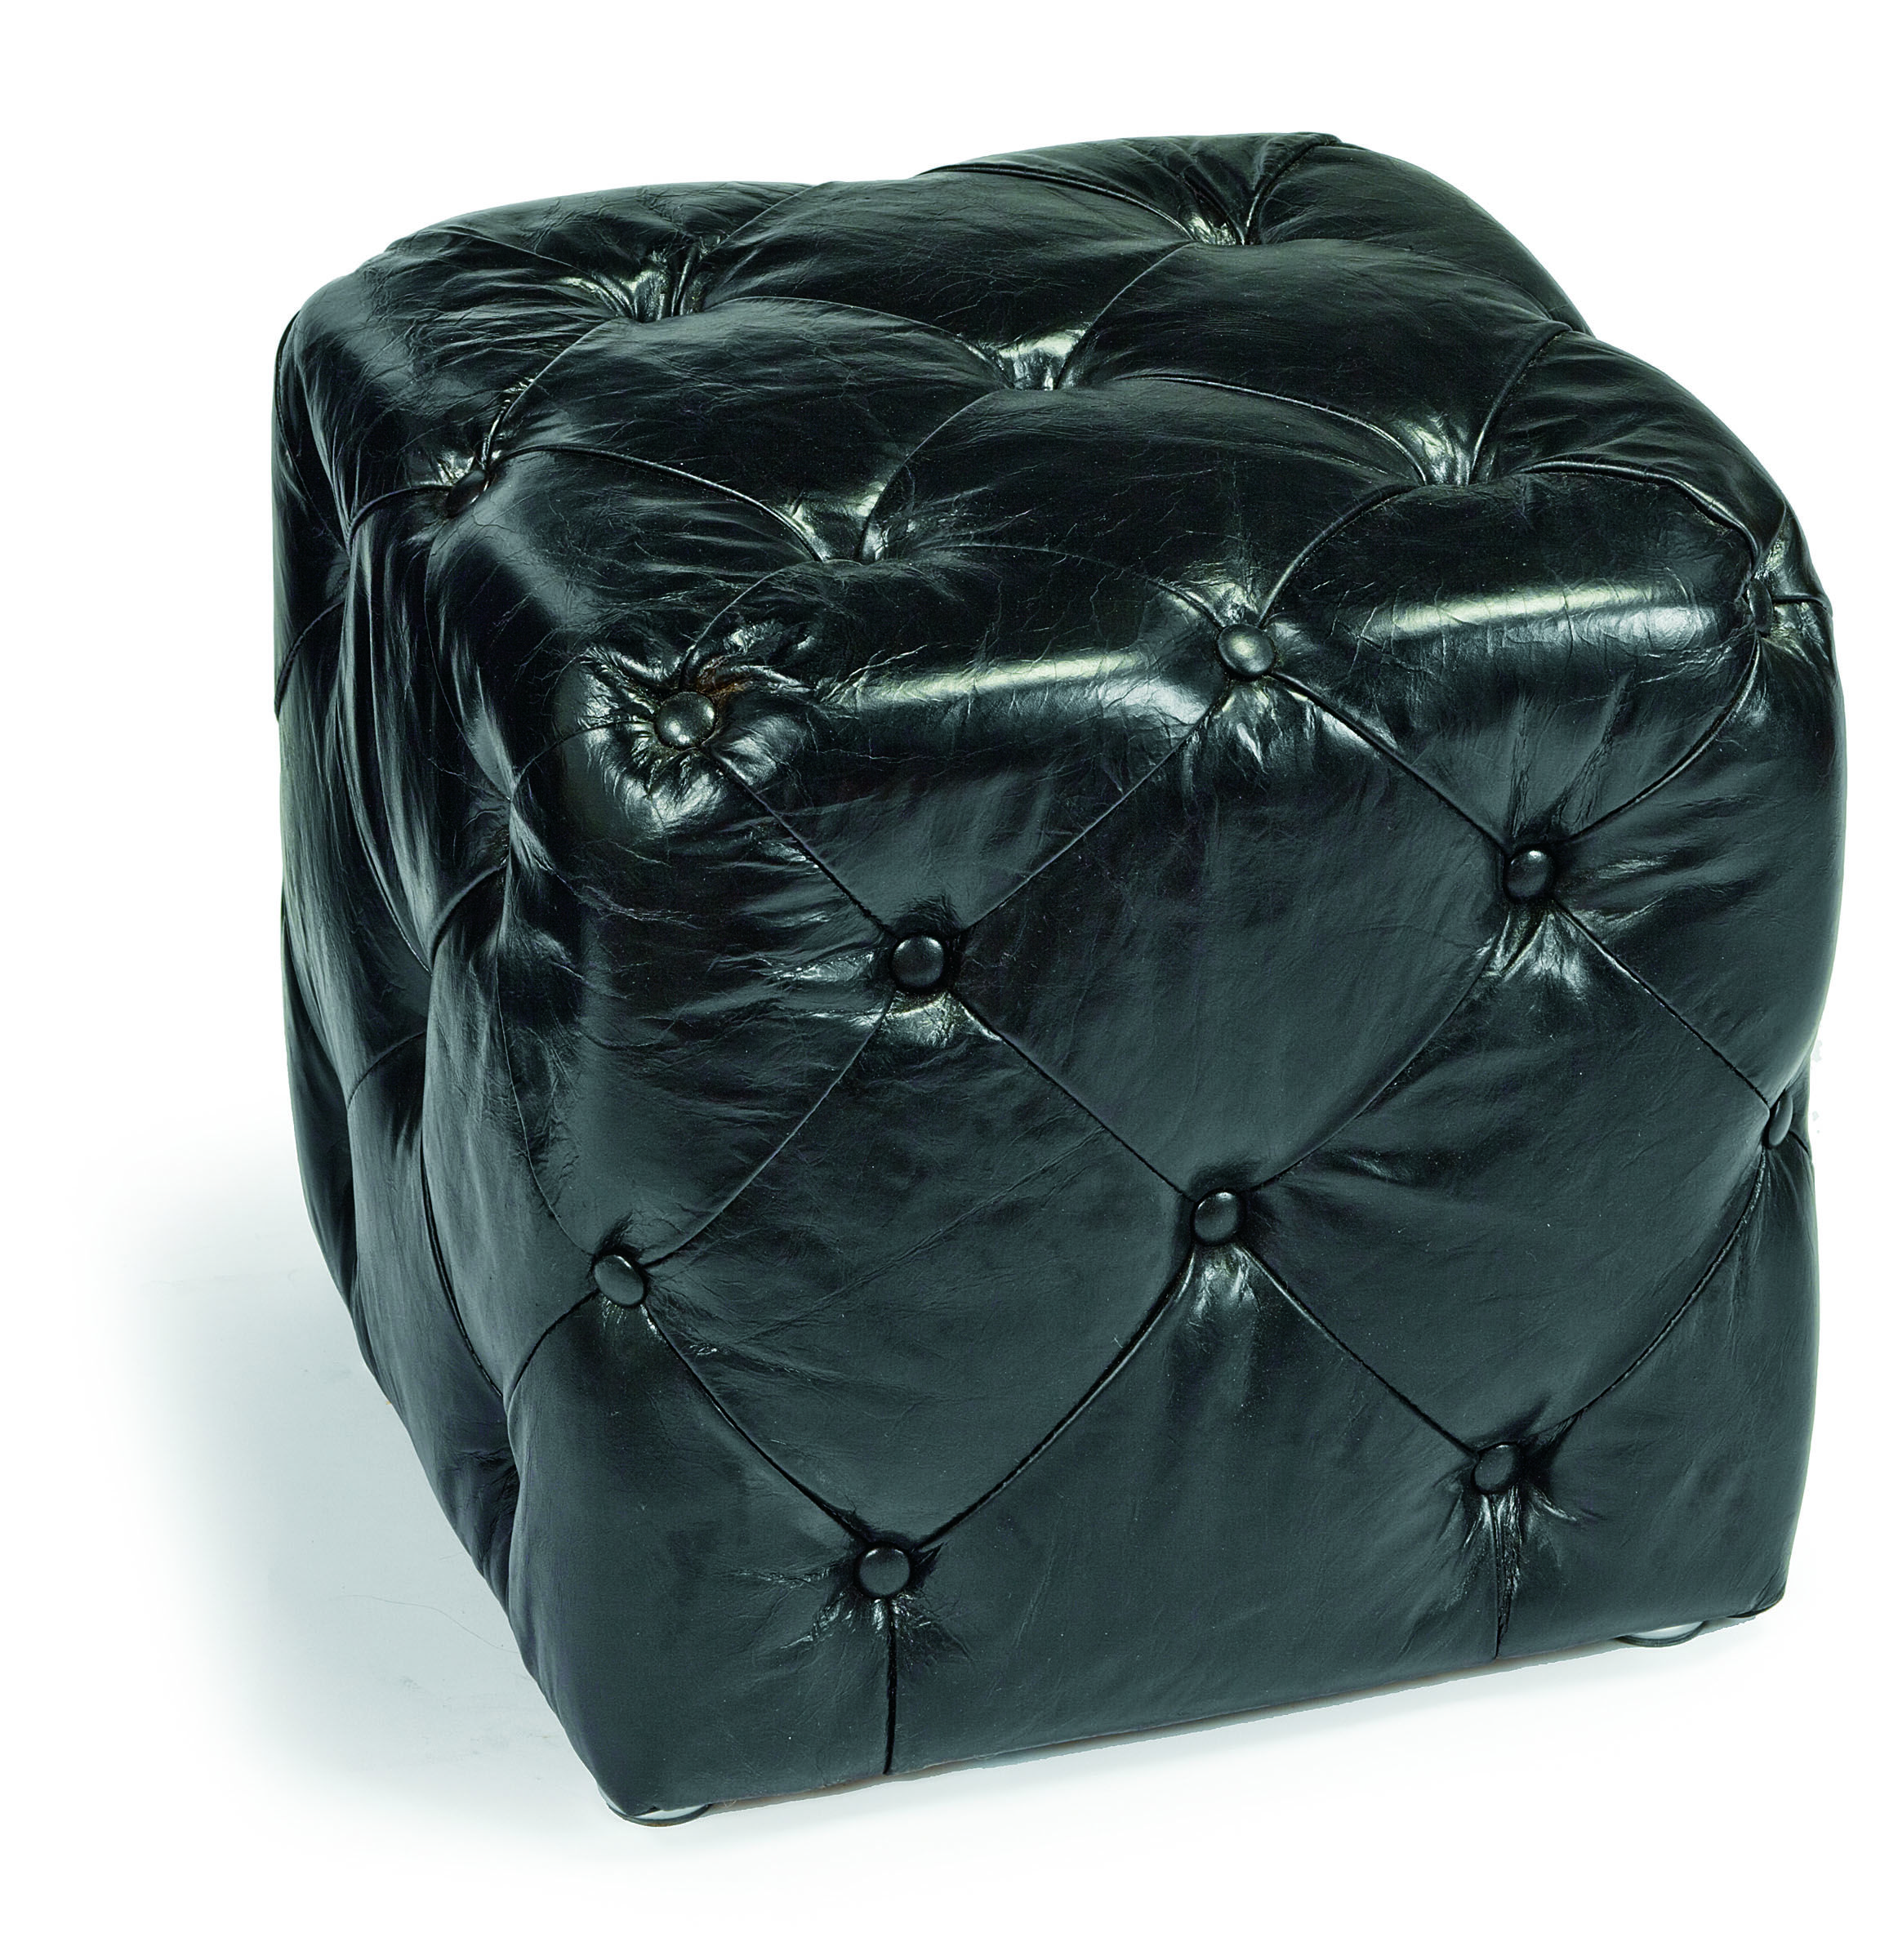 This ottoman looks punk rock with its high shine and tufting!  By Regina Andrew. TheHome.com #hpmkt